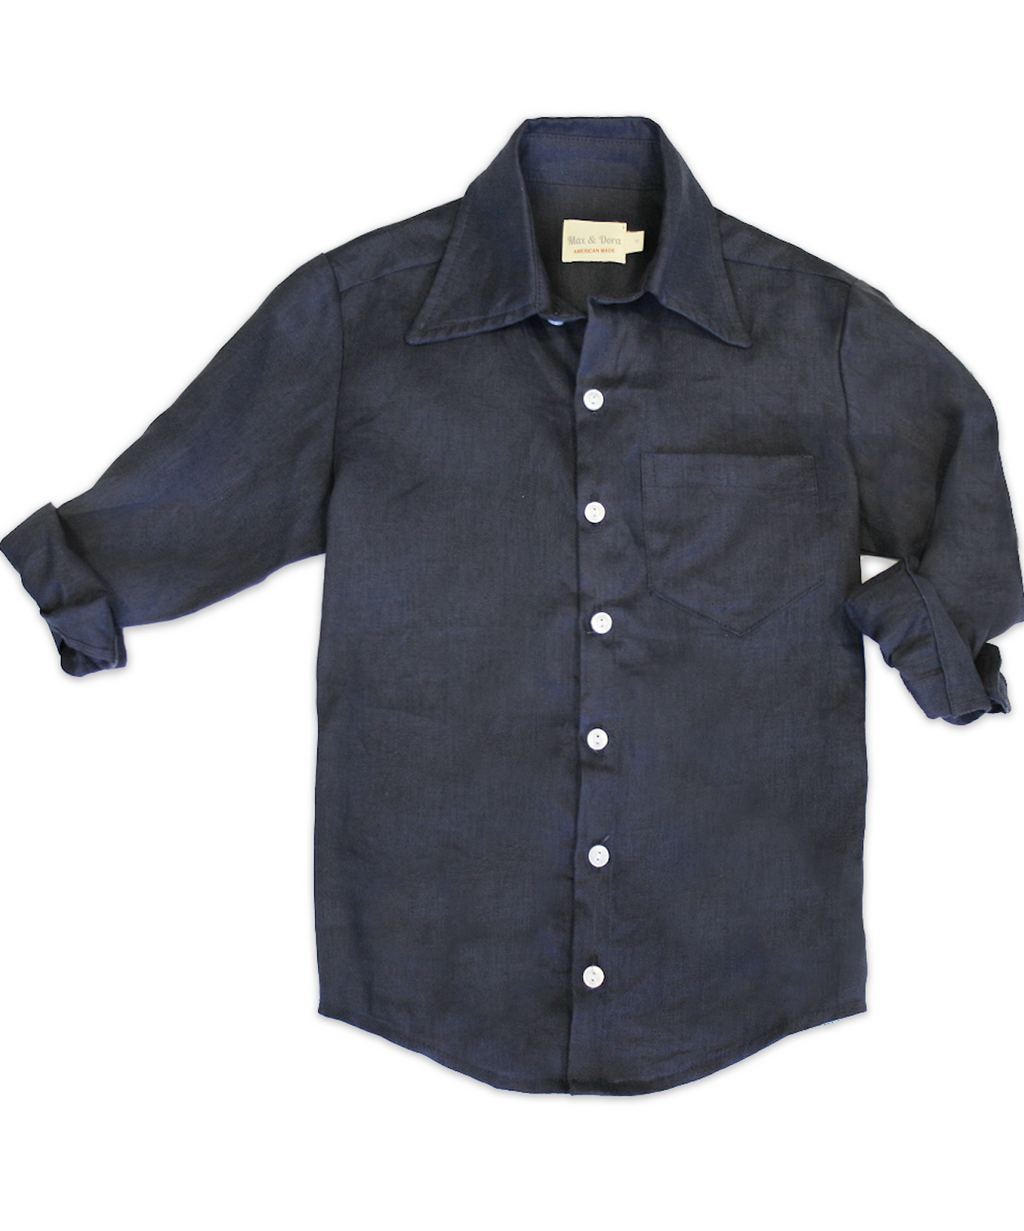 George Navy Linen Shirt